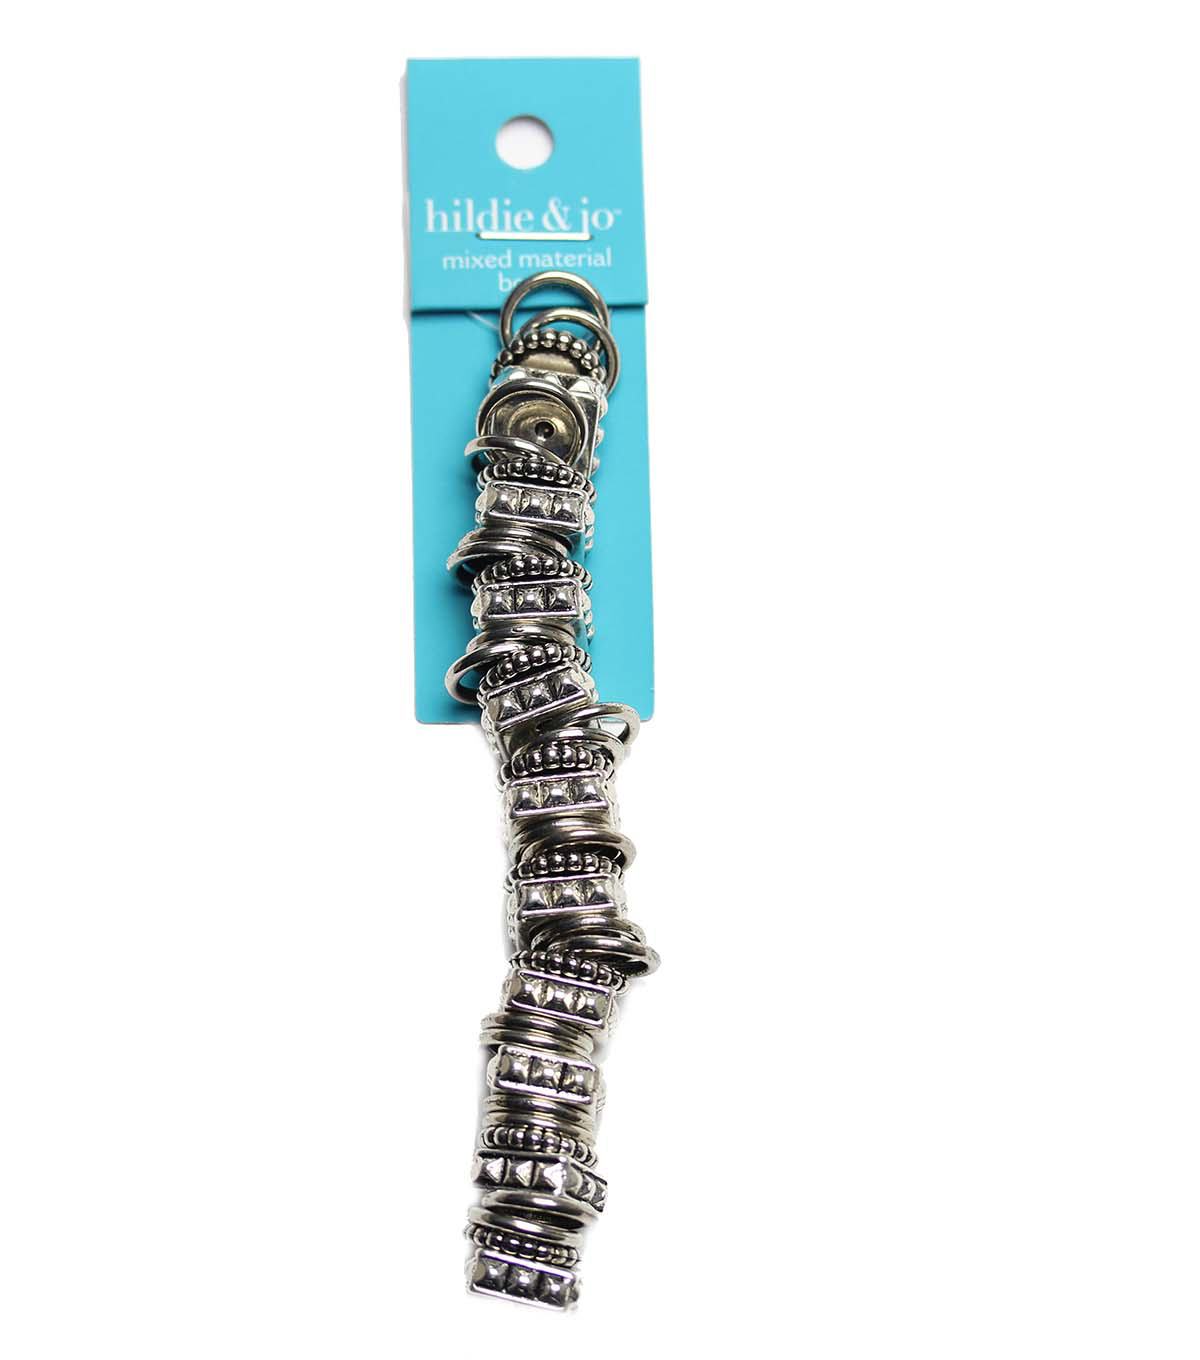 hildie & jo Strung Beads-Silver Plated Loop Mix